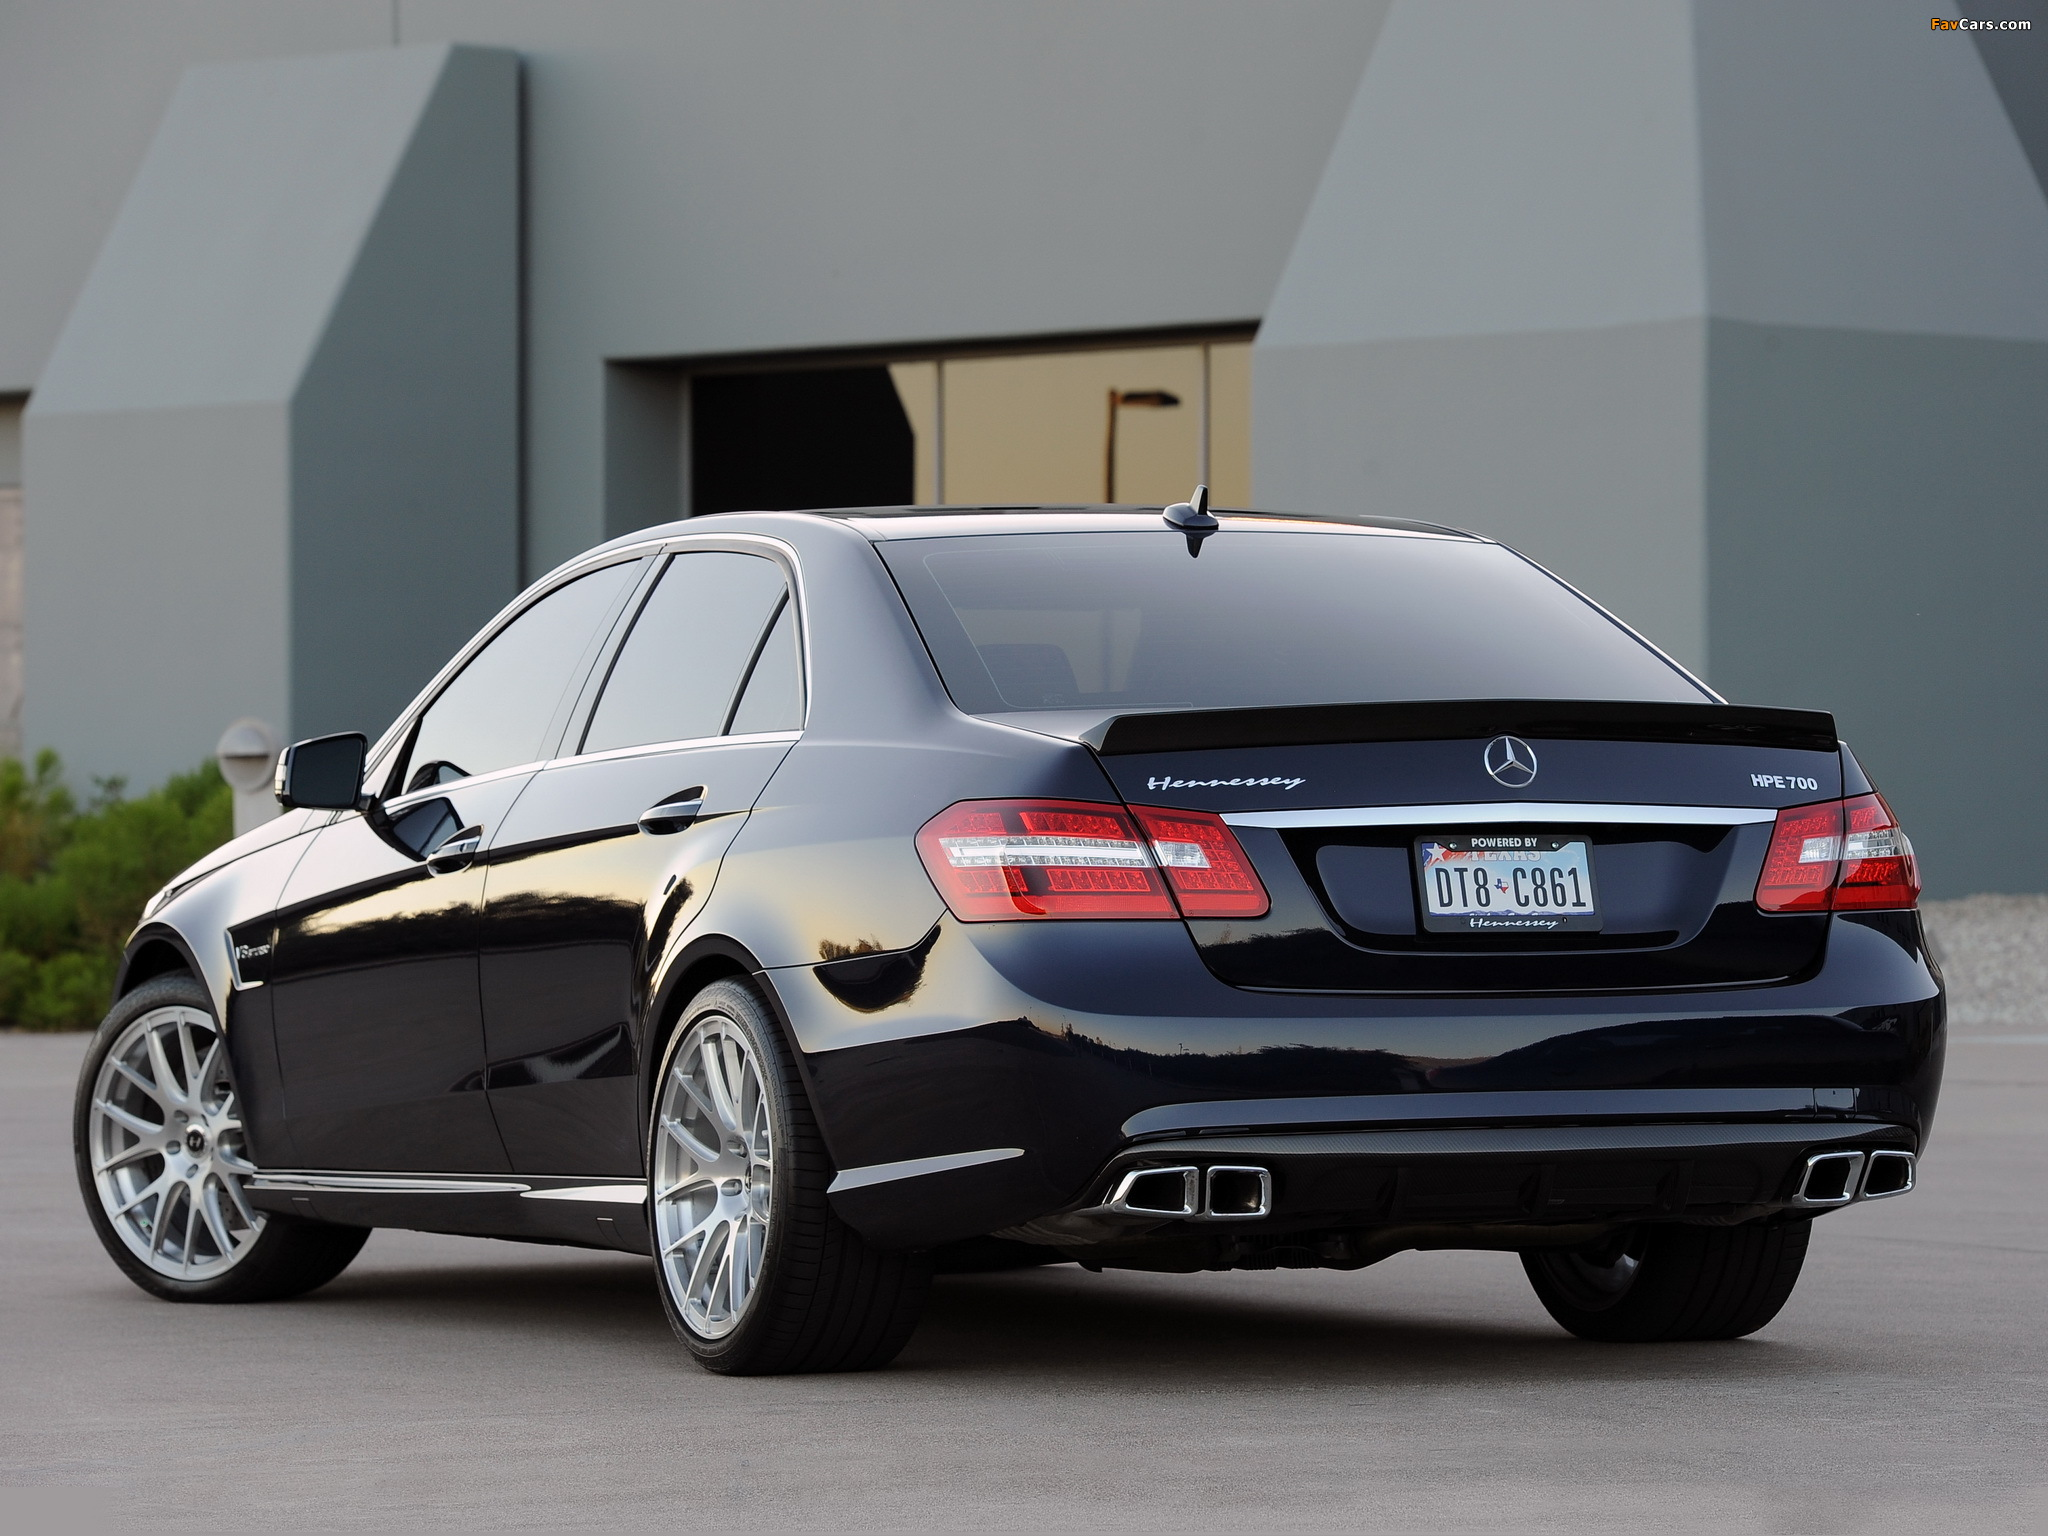 See Rims On Your Car >> Hennessey Mercedes-Benz E 63 AMG V8 Biturbo HPE700 (W212) 2012 wallpapers (2048x1536)